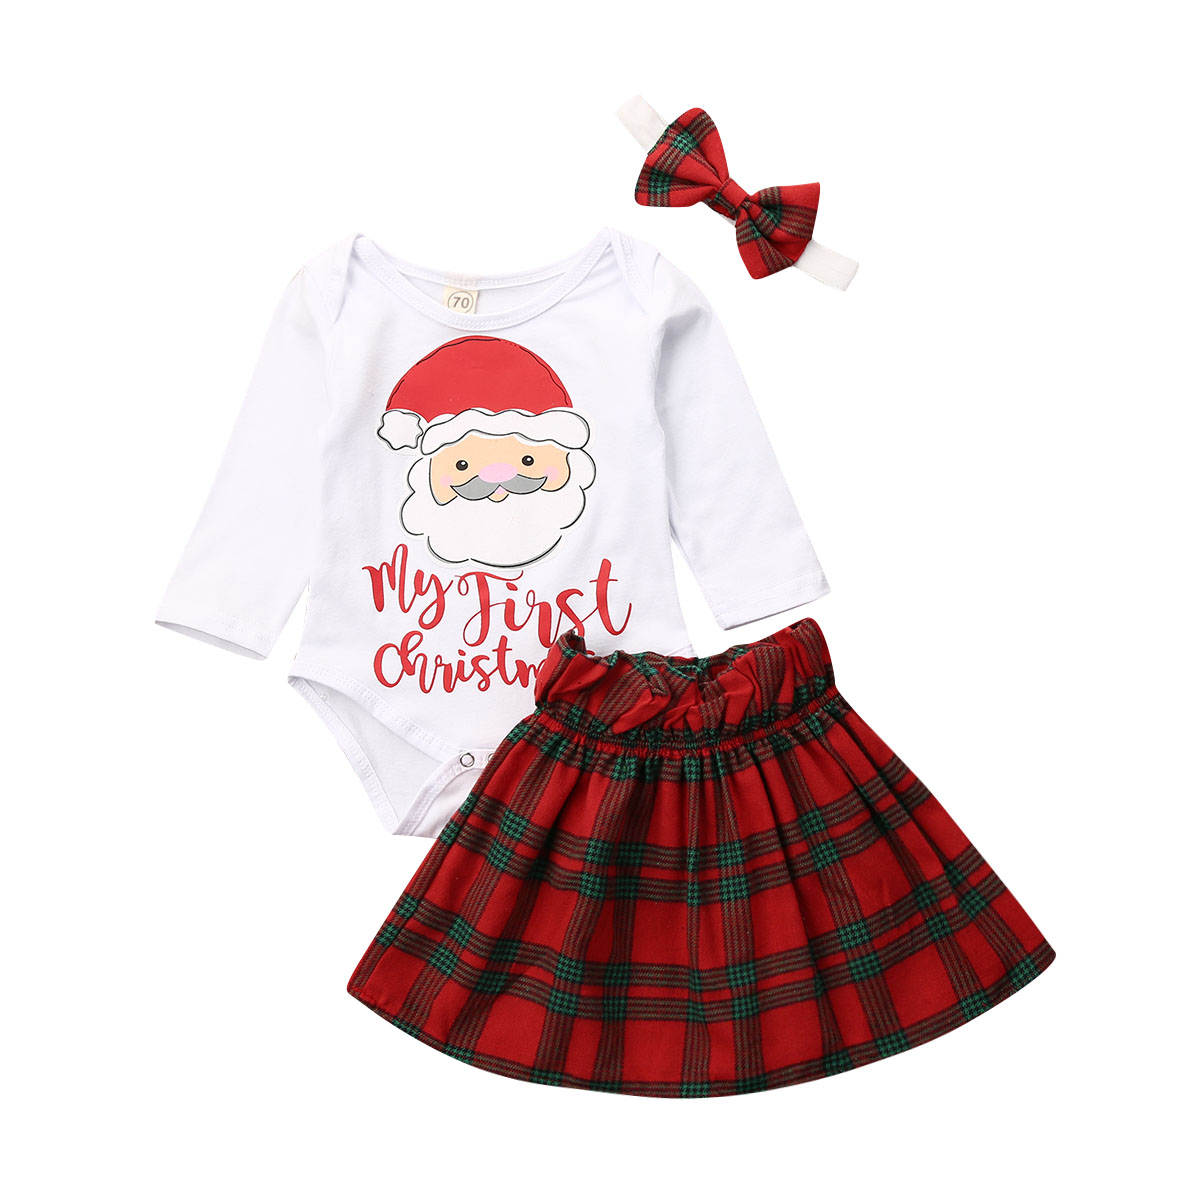 UK My 1st Christmas Newborn Baby Girl Xmas Clothes Romper Plaid Skirt 3Pc Outfit